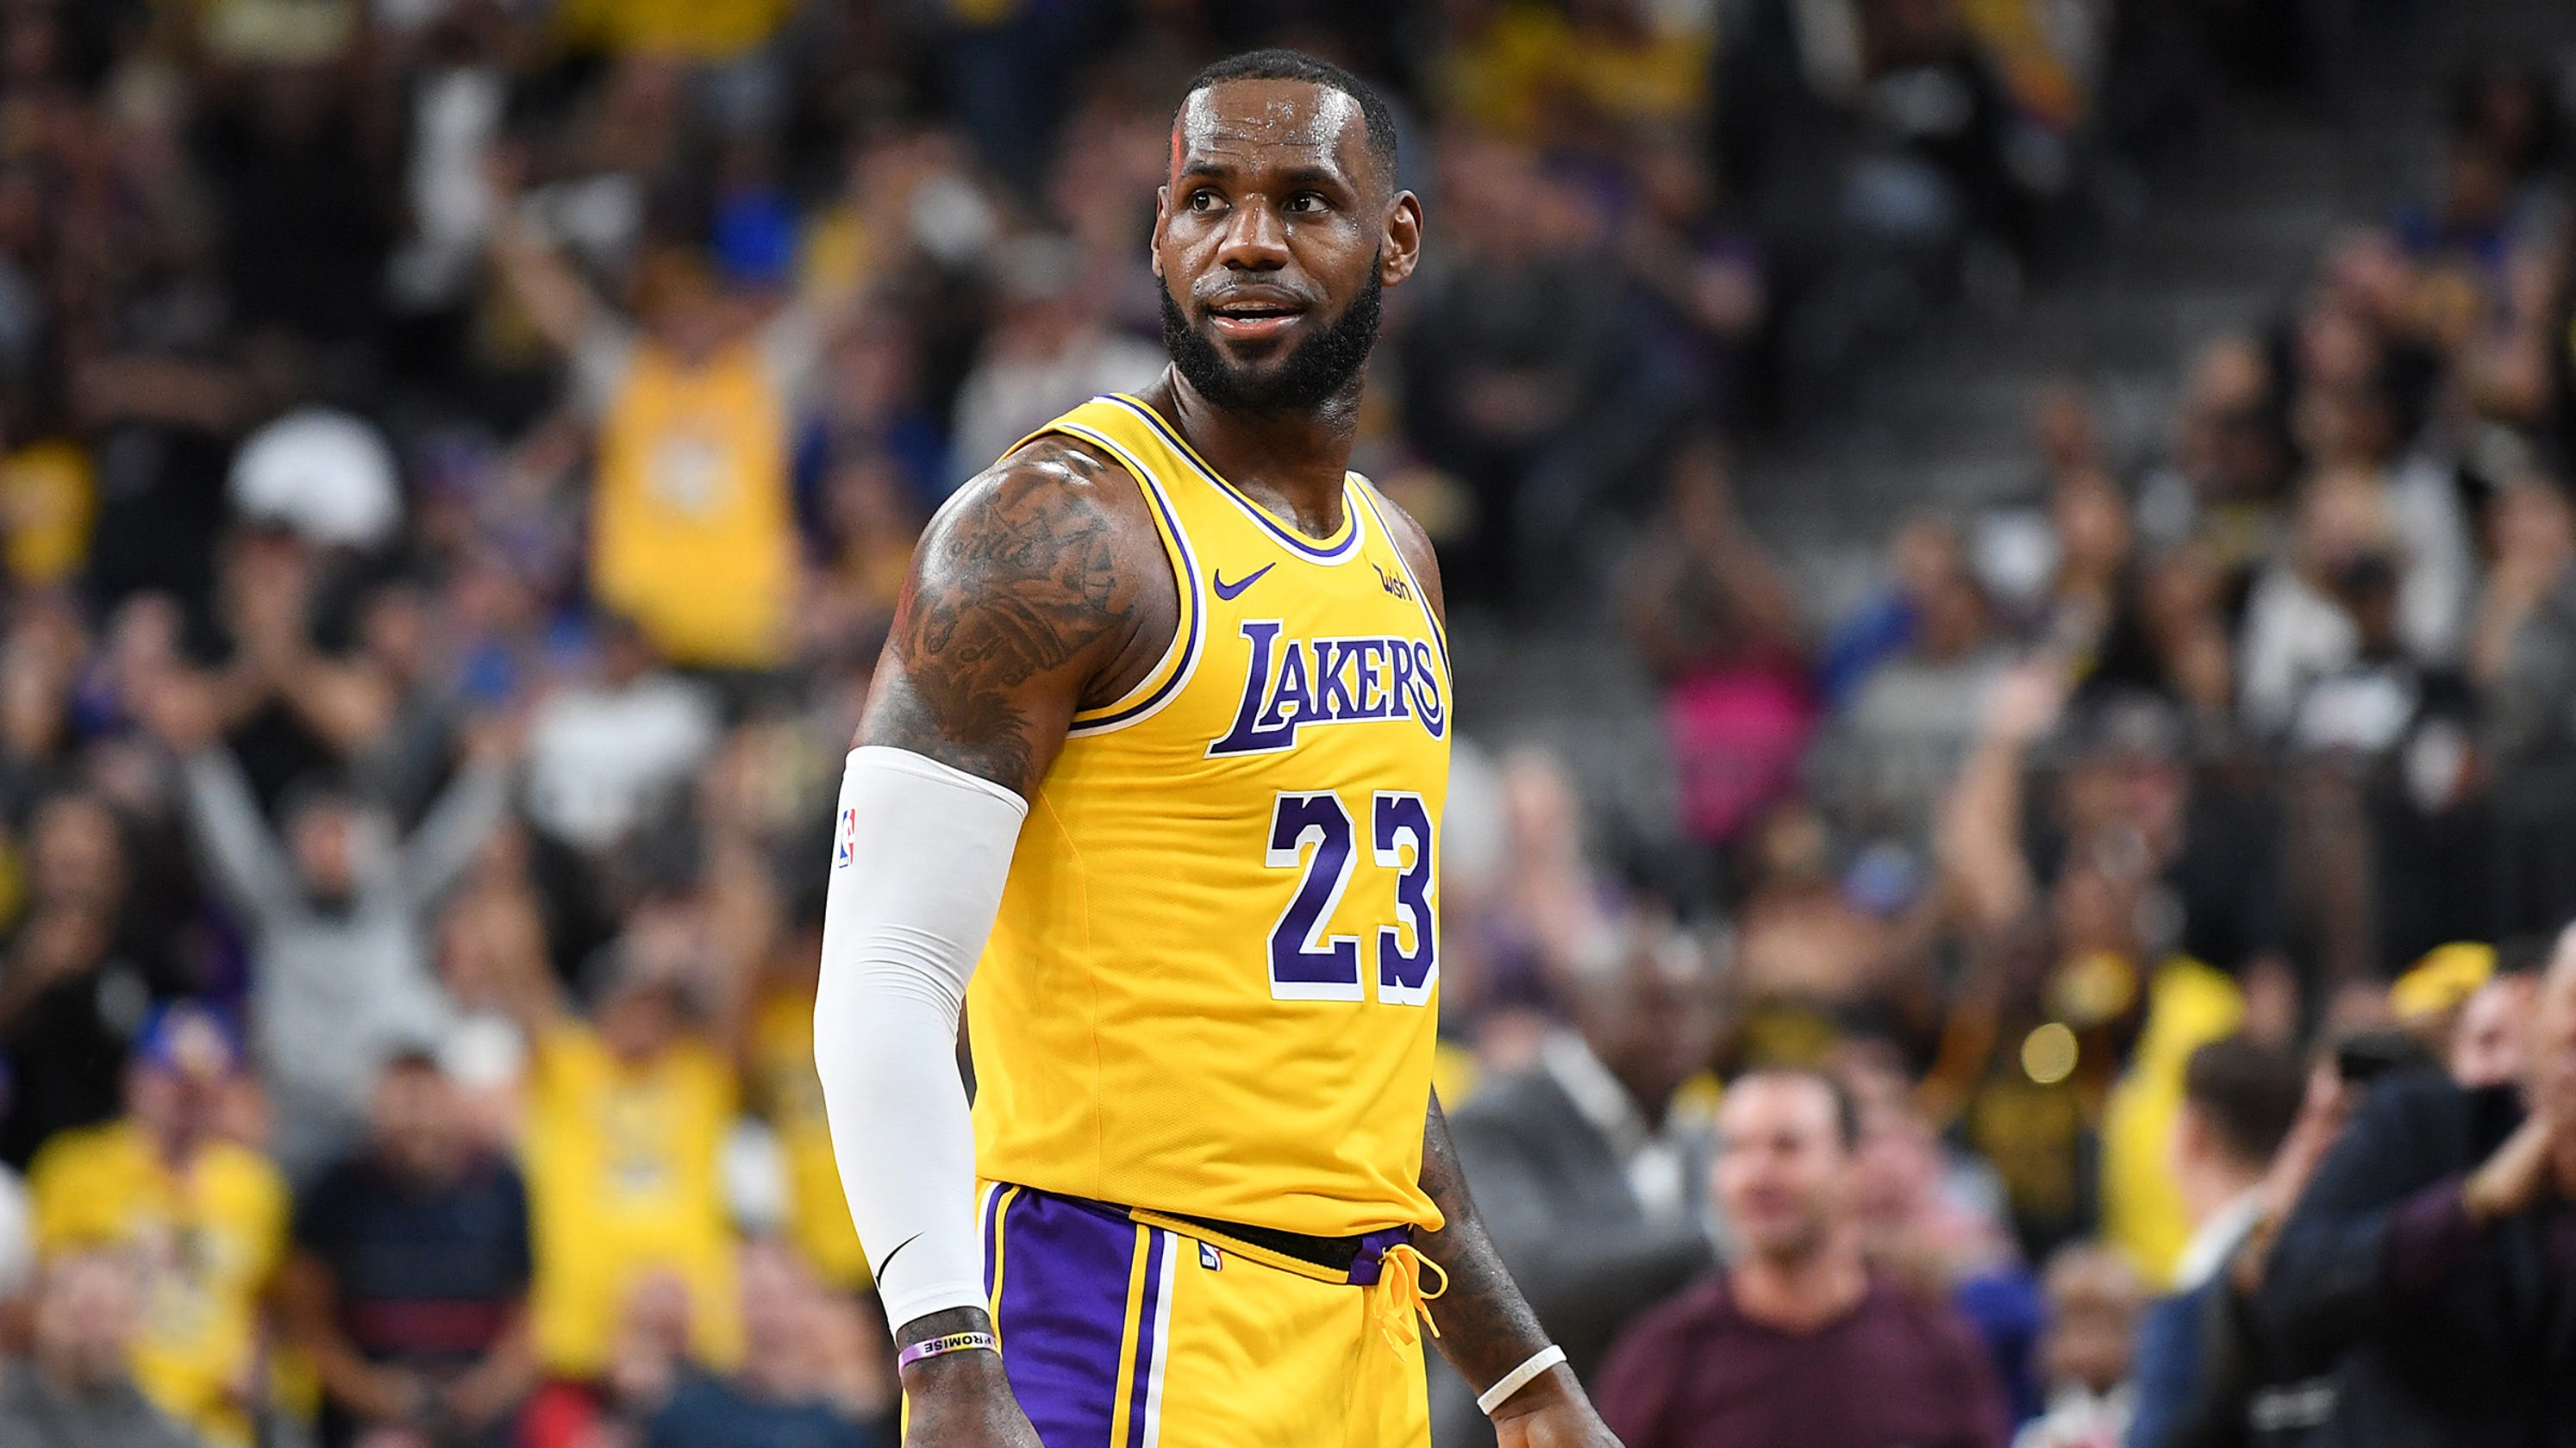 2019 Nba All Star Game Mock Draft Lebron And Giannis Pick Rosters